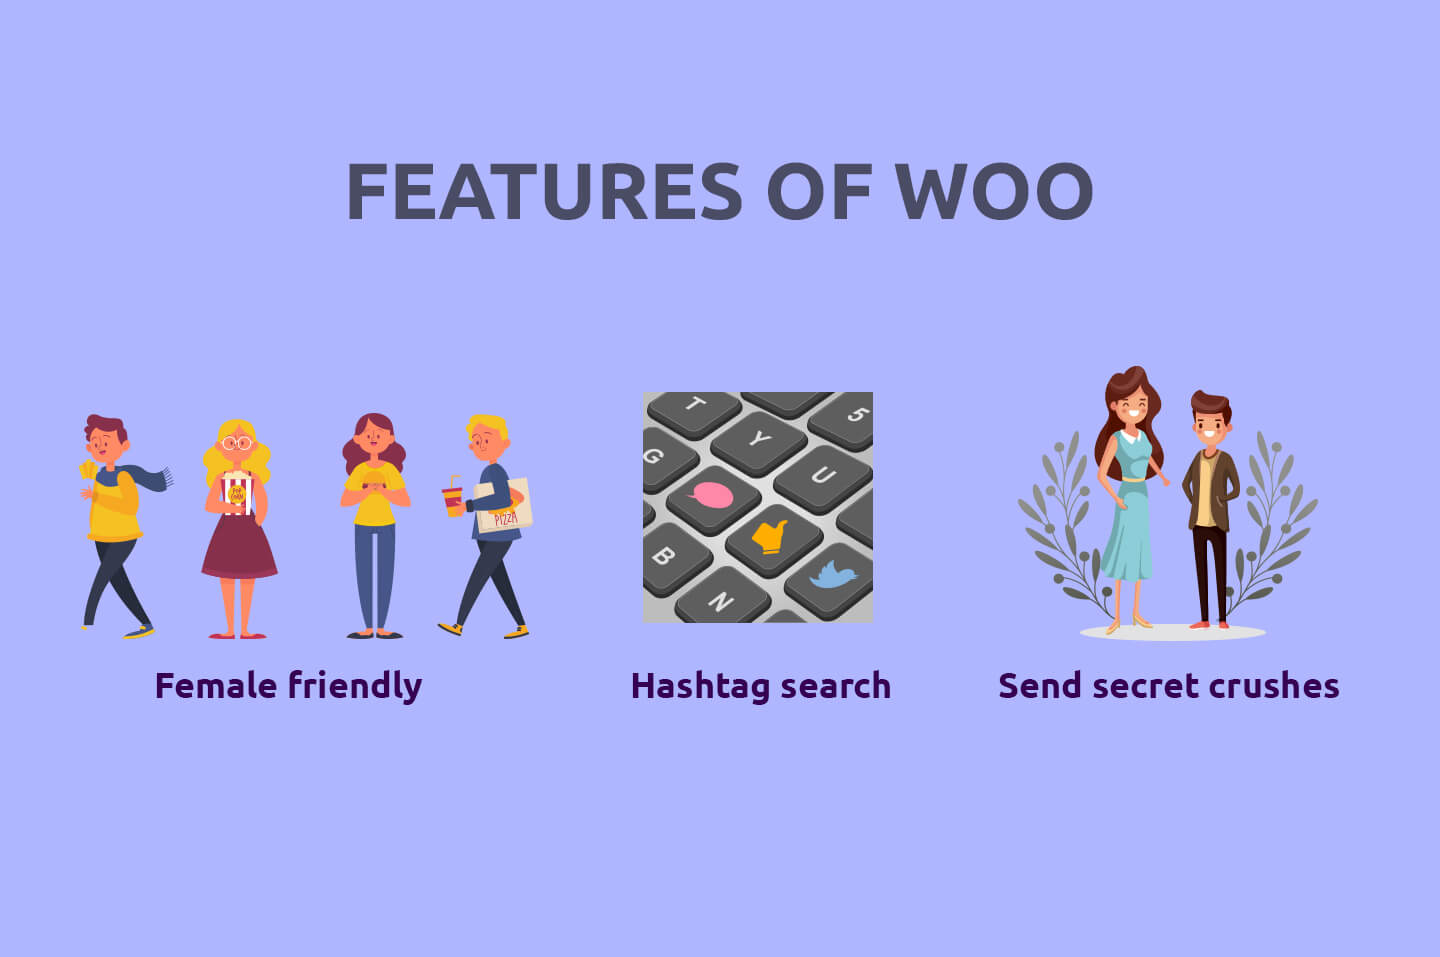 Features of woo